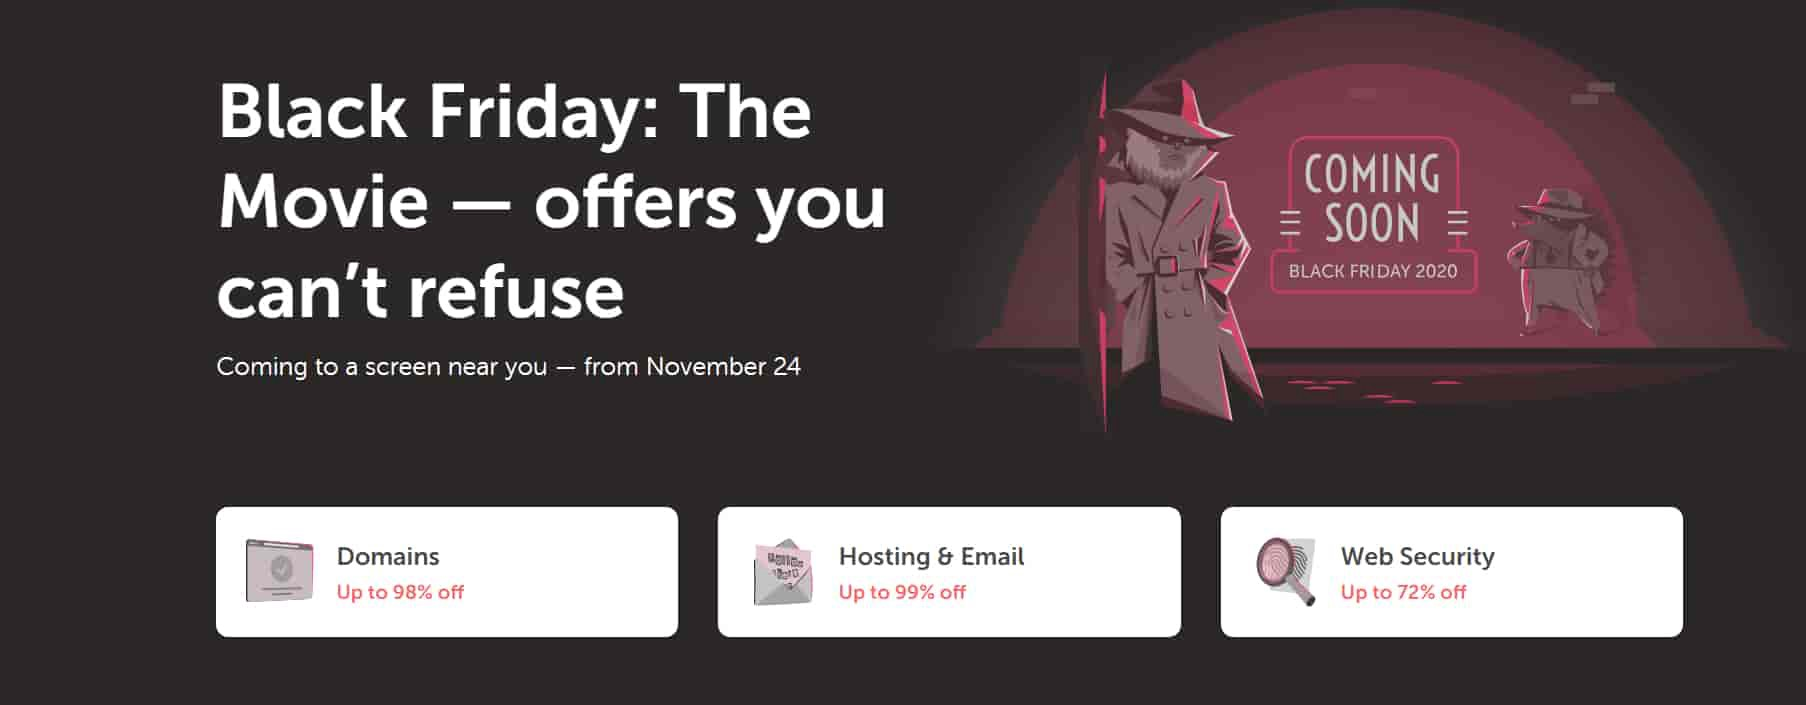 Namecheap Black Friday Deals 2020 Offer Grab 99 Off By Rishabhprajapati Nov 2020 Medium